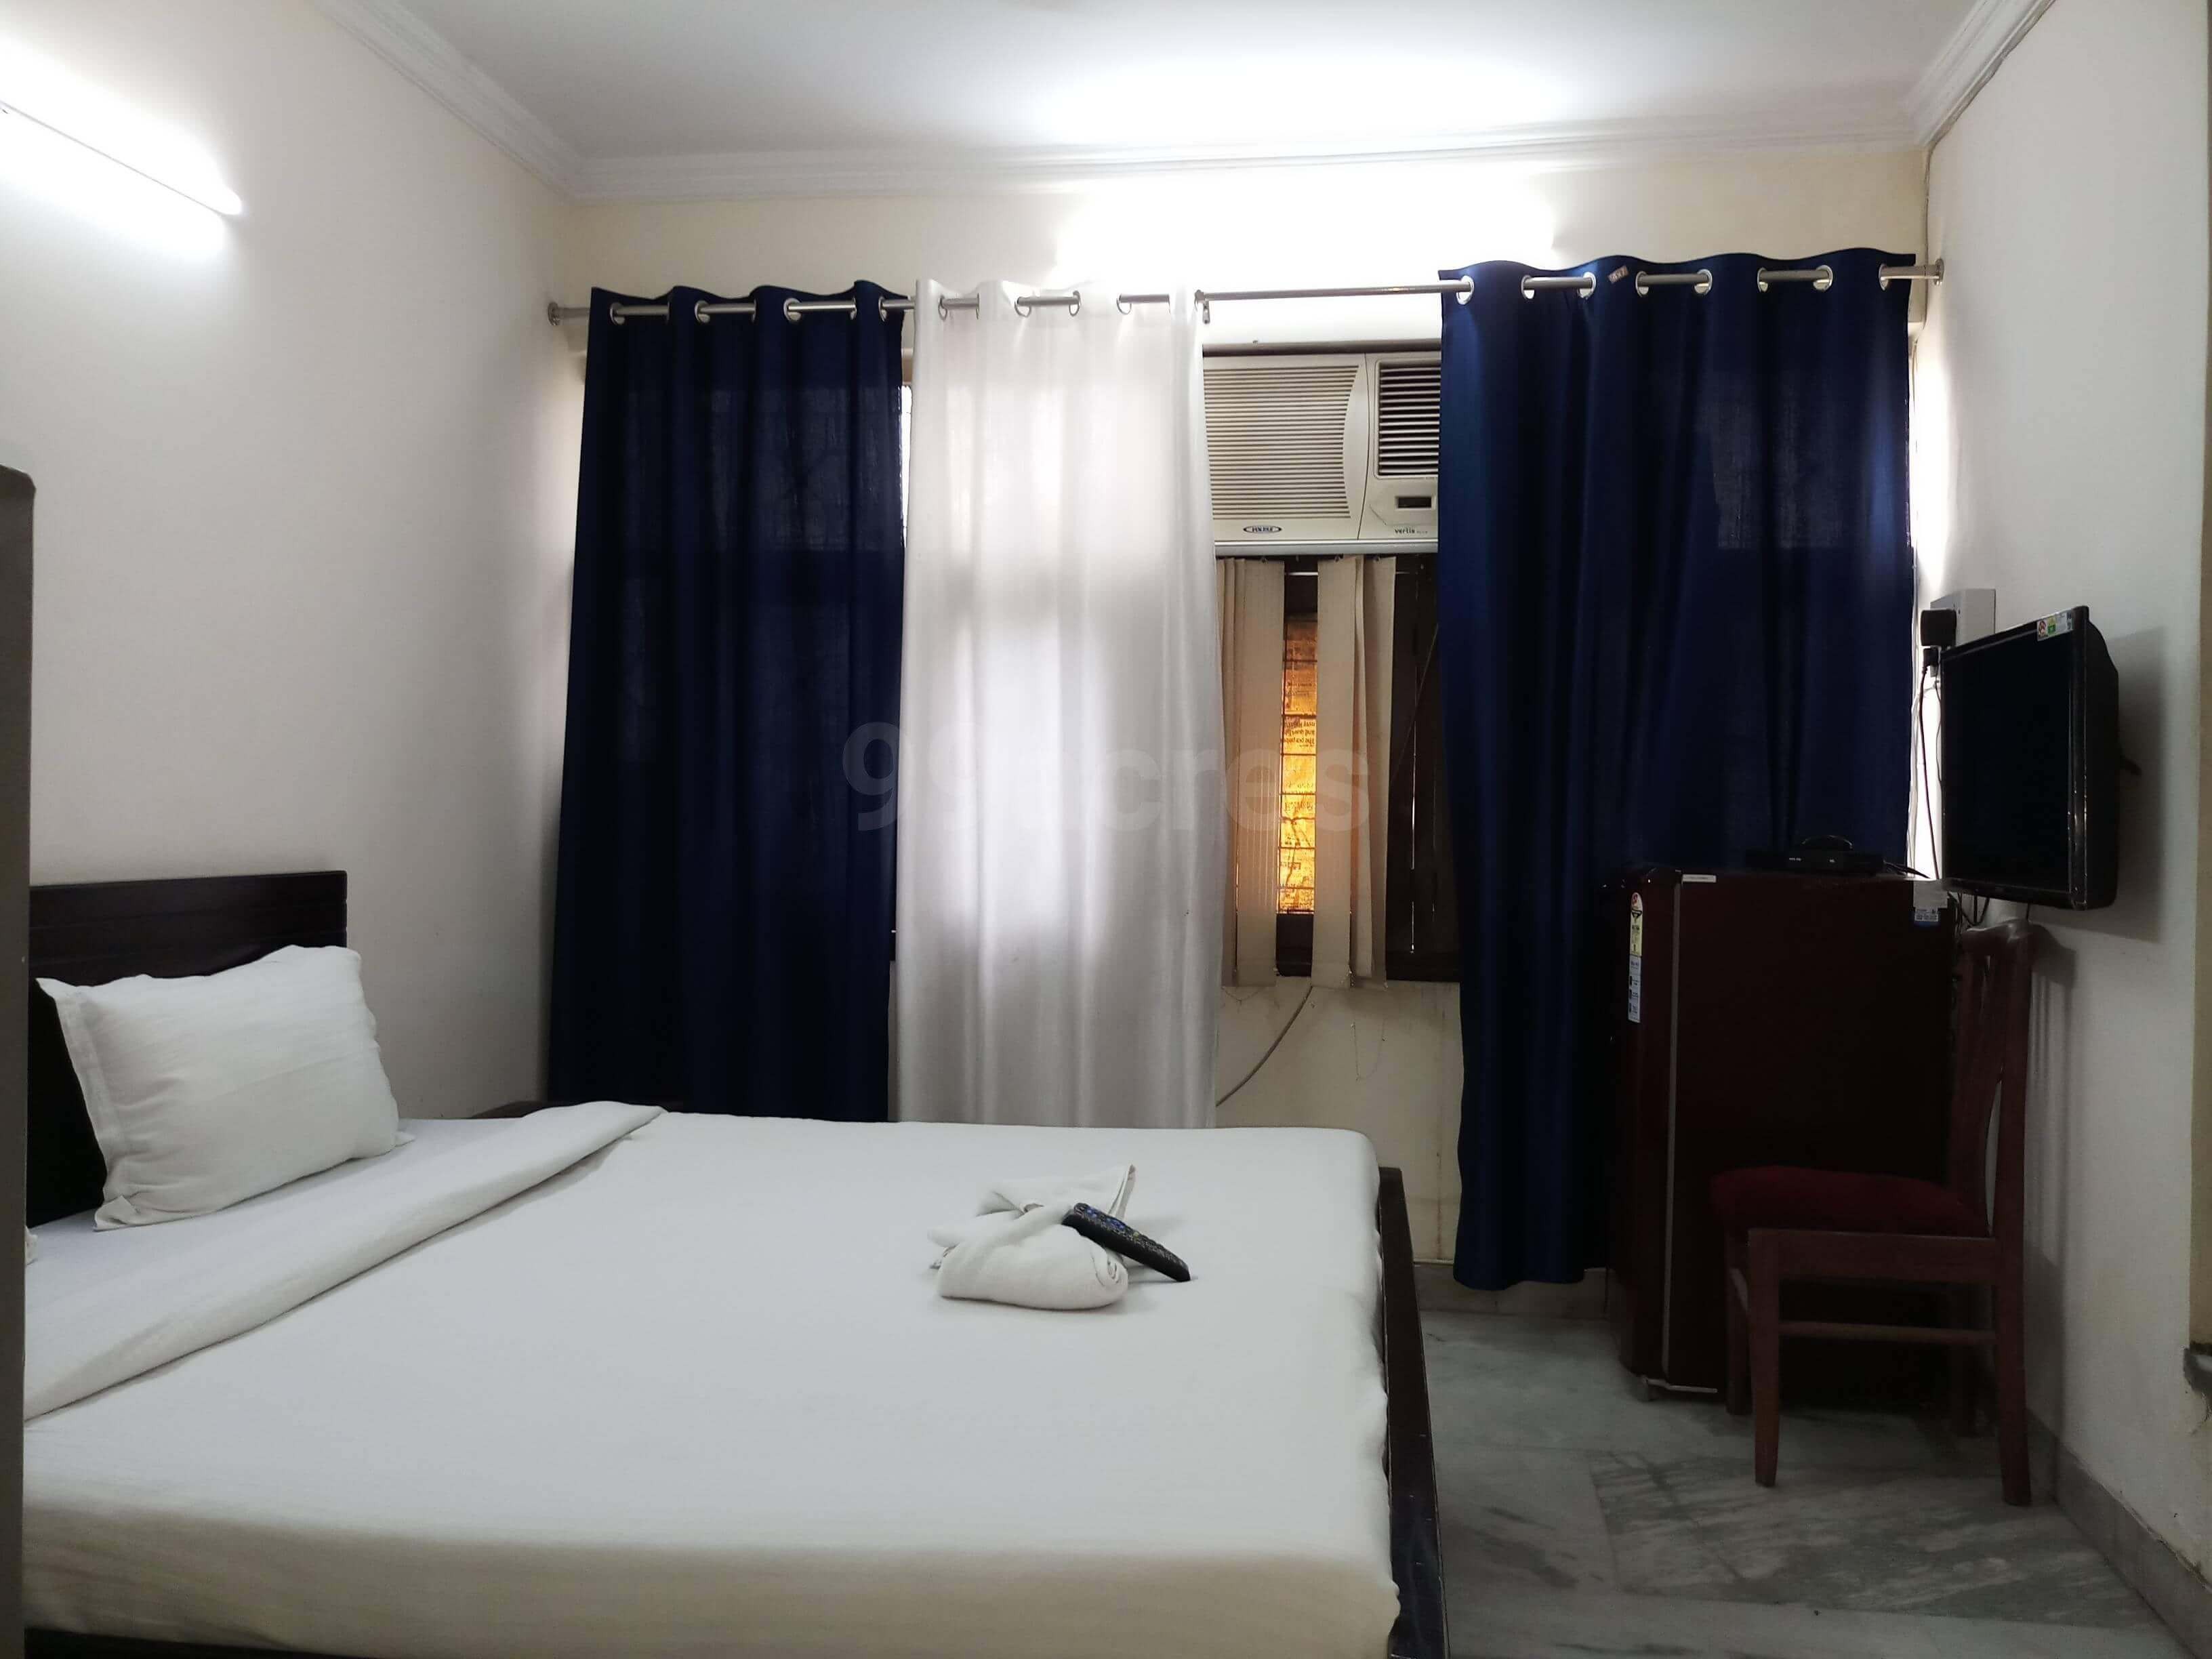 RK Studio Apartment in Greater Kailash - II, New Delhi - 110048